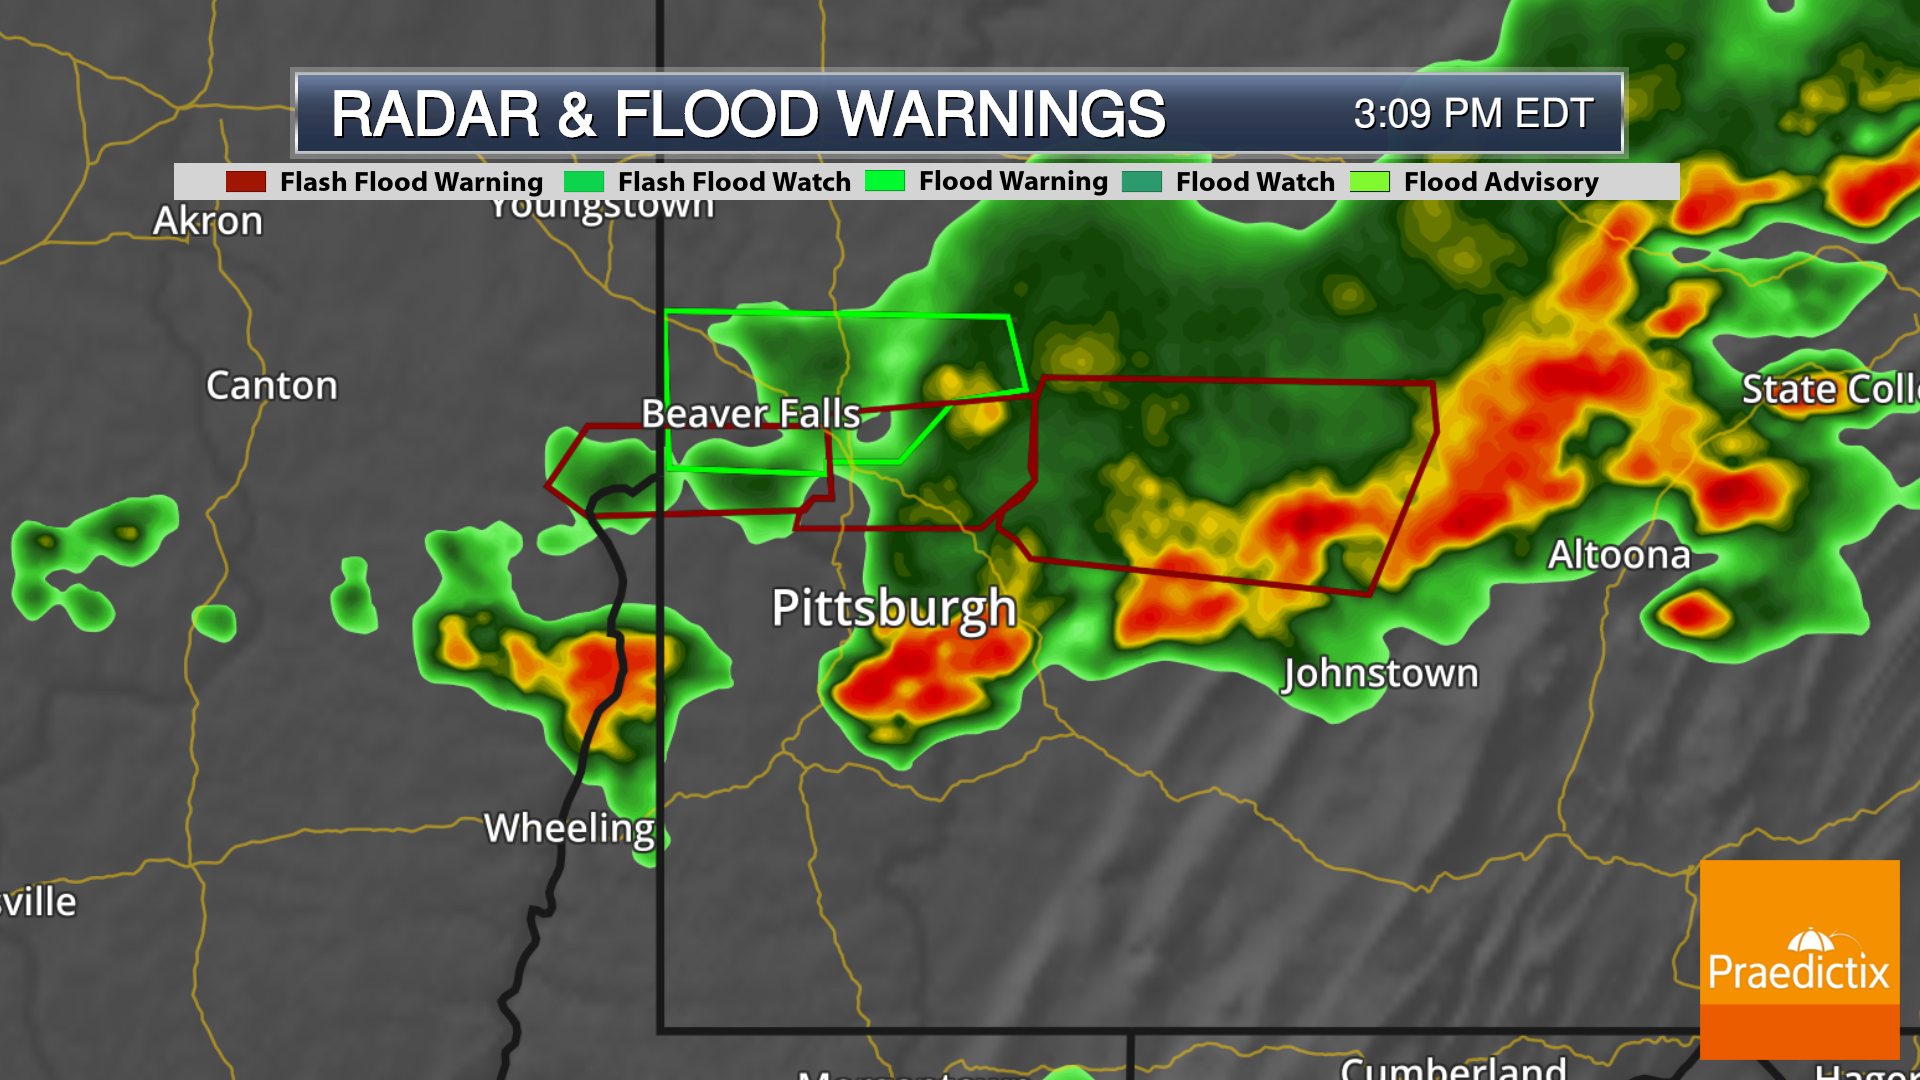 Weather graphic of radar and flood warnings in Pennsylvania with legend on May 29, 2019.